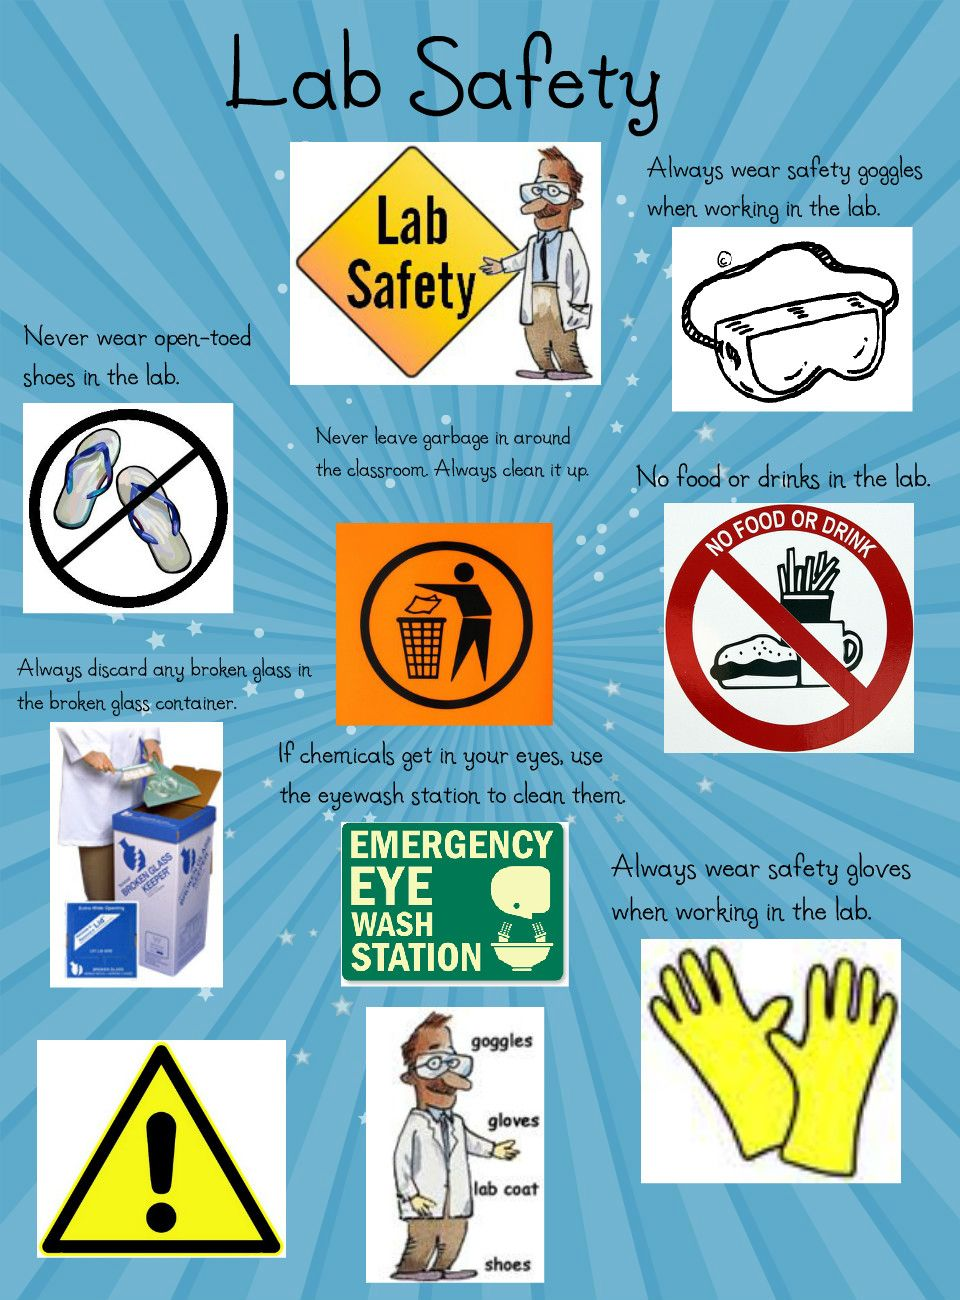 Pin on Lab Safety Tips